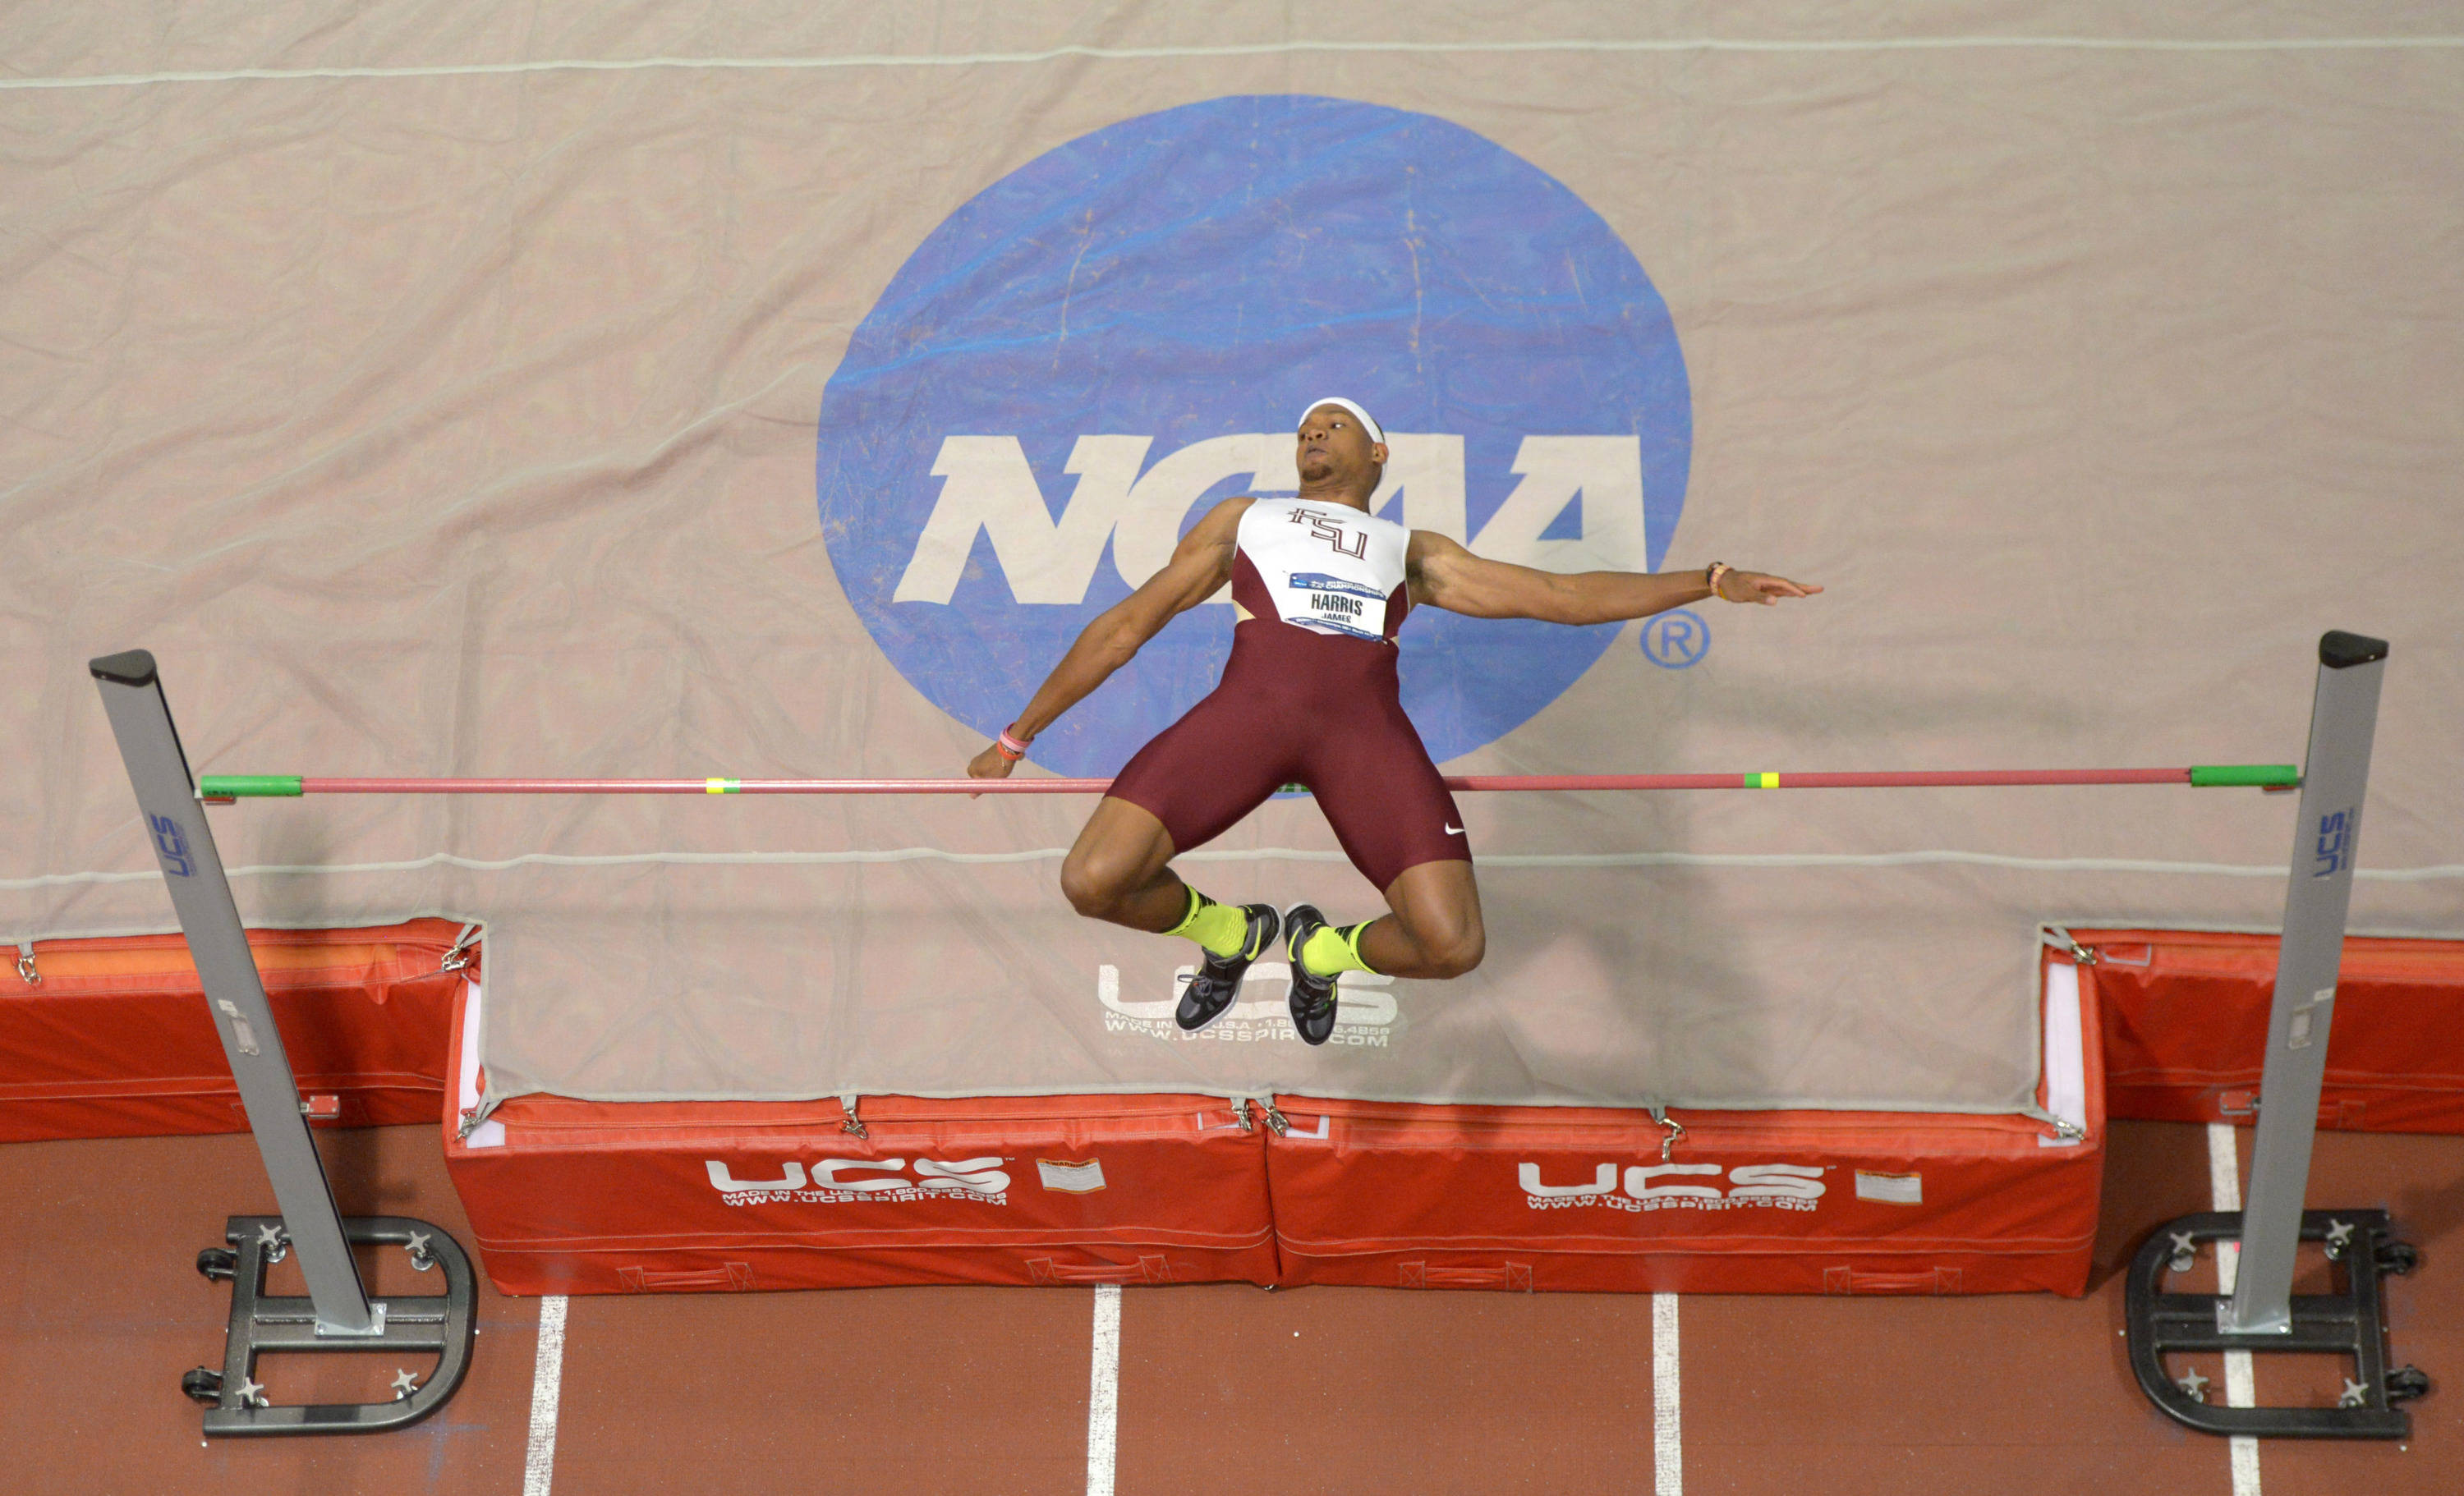 Mar 14, 2014; Albuquerque, NM, USA; General view of James Harris of Florida State in the high jump during the 2014 NCAA Indoor Championships at Albuquerque Convention Center. Harris won with a clearance of 7-7 1/4 (2.32m).Mandatory Credit: Kirby Lee-USA TODAY Sports